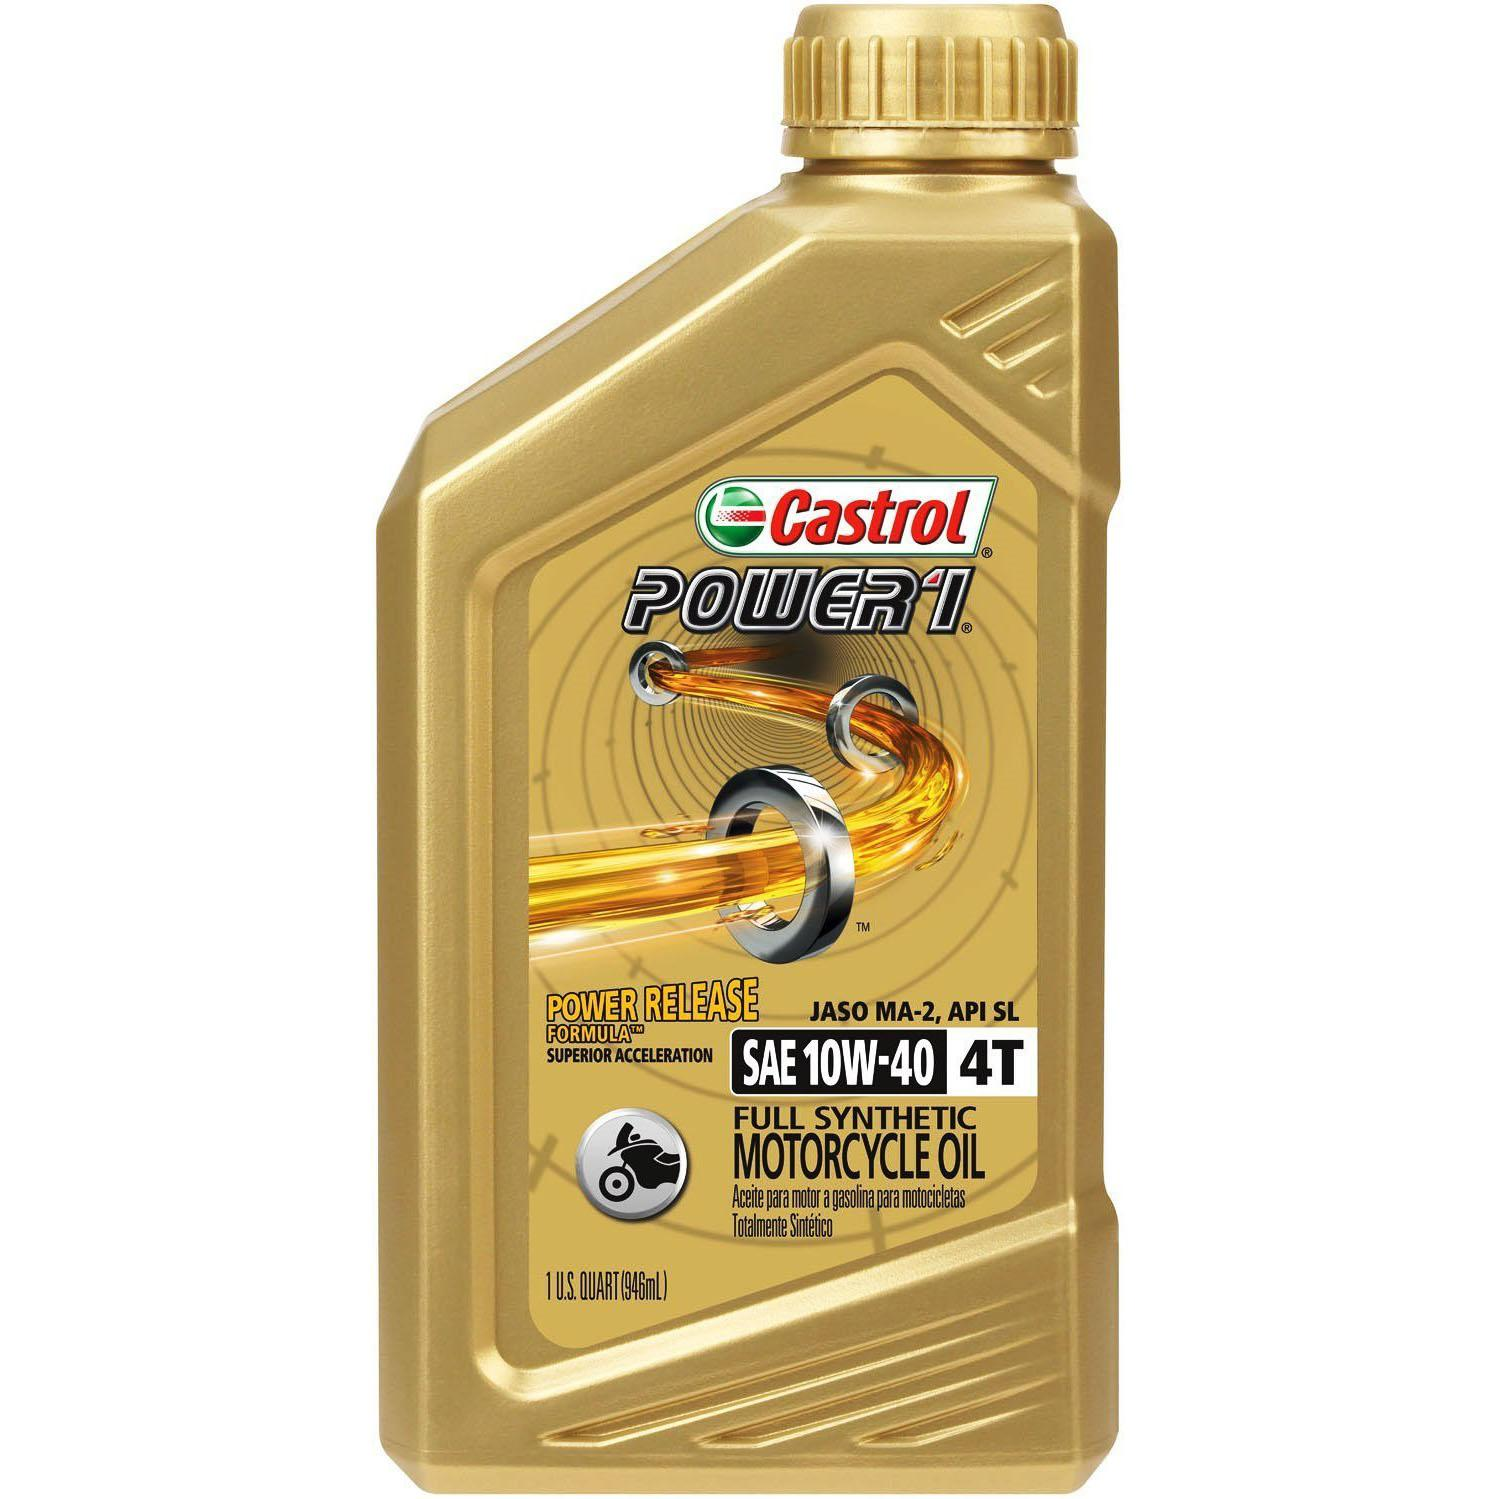 6Qt Castrol Power1 10W-40 Synthetic Motorcycle Oil